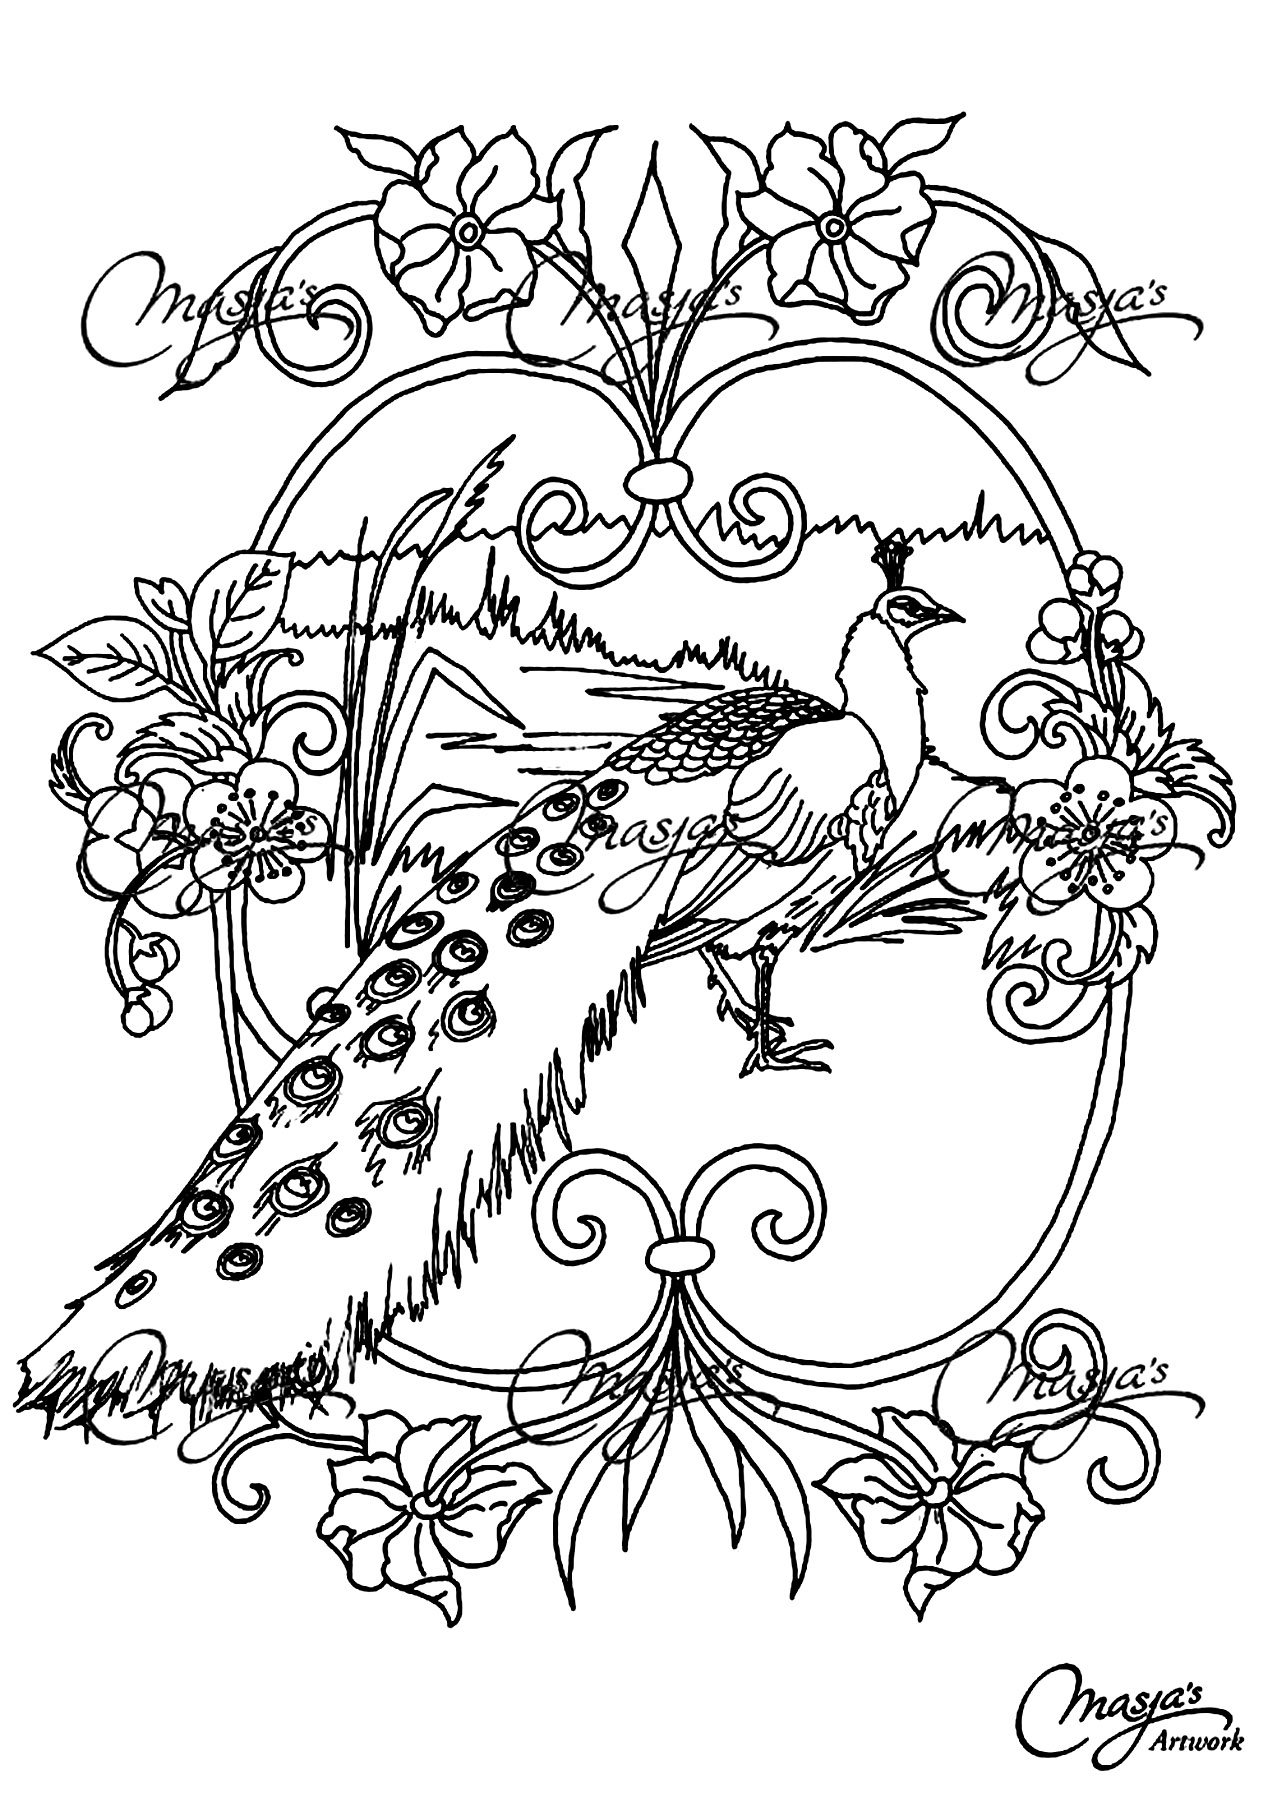 animals peacock animals coloring pages for adults justcolor